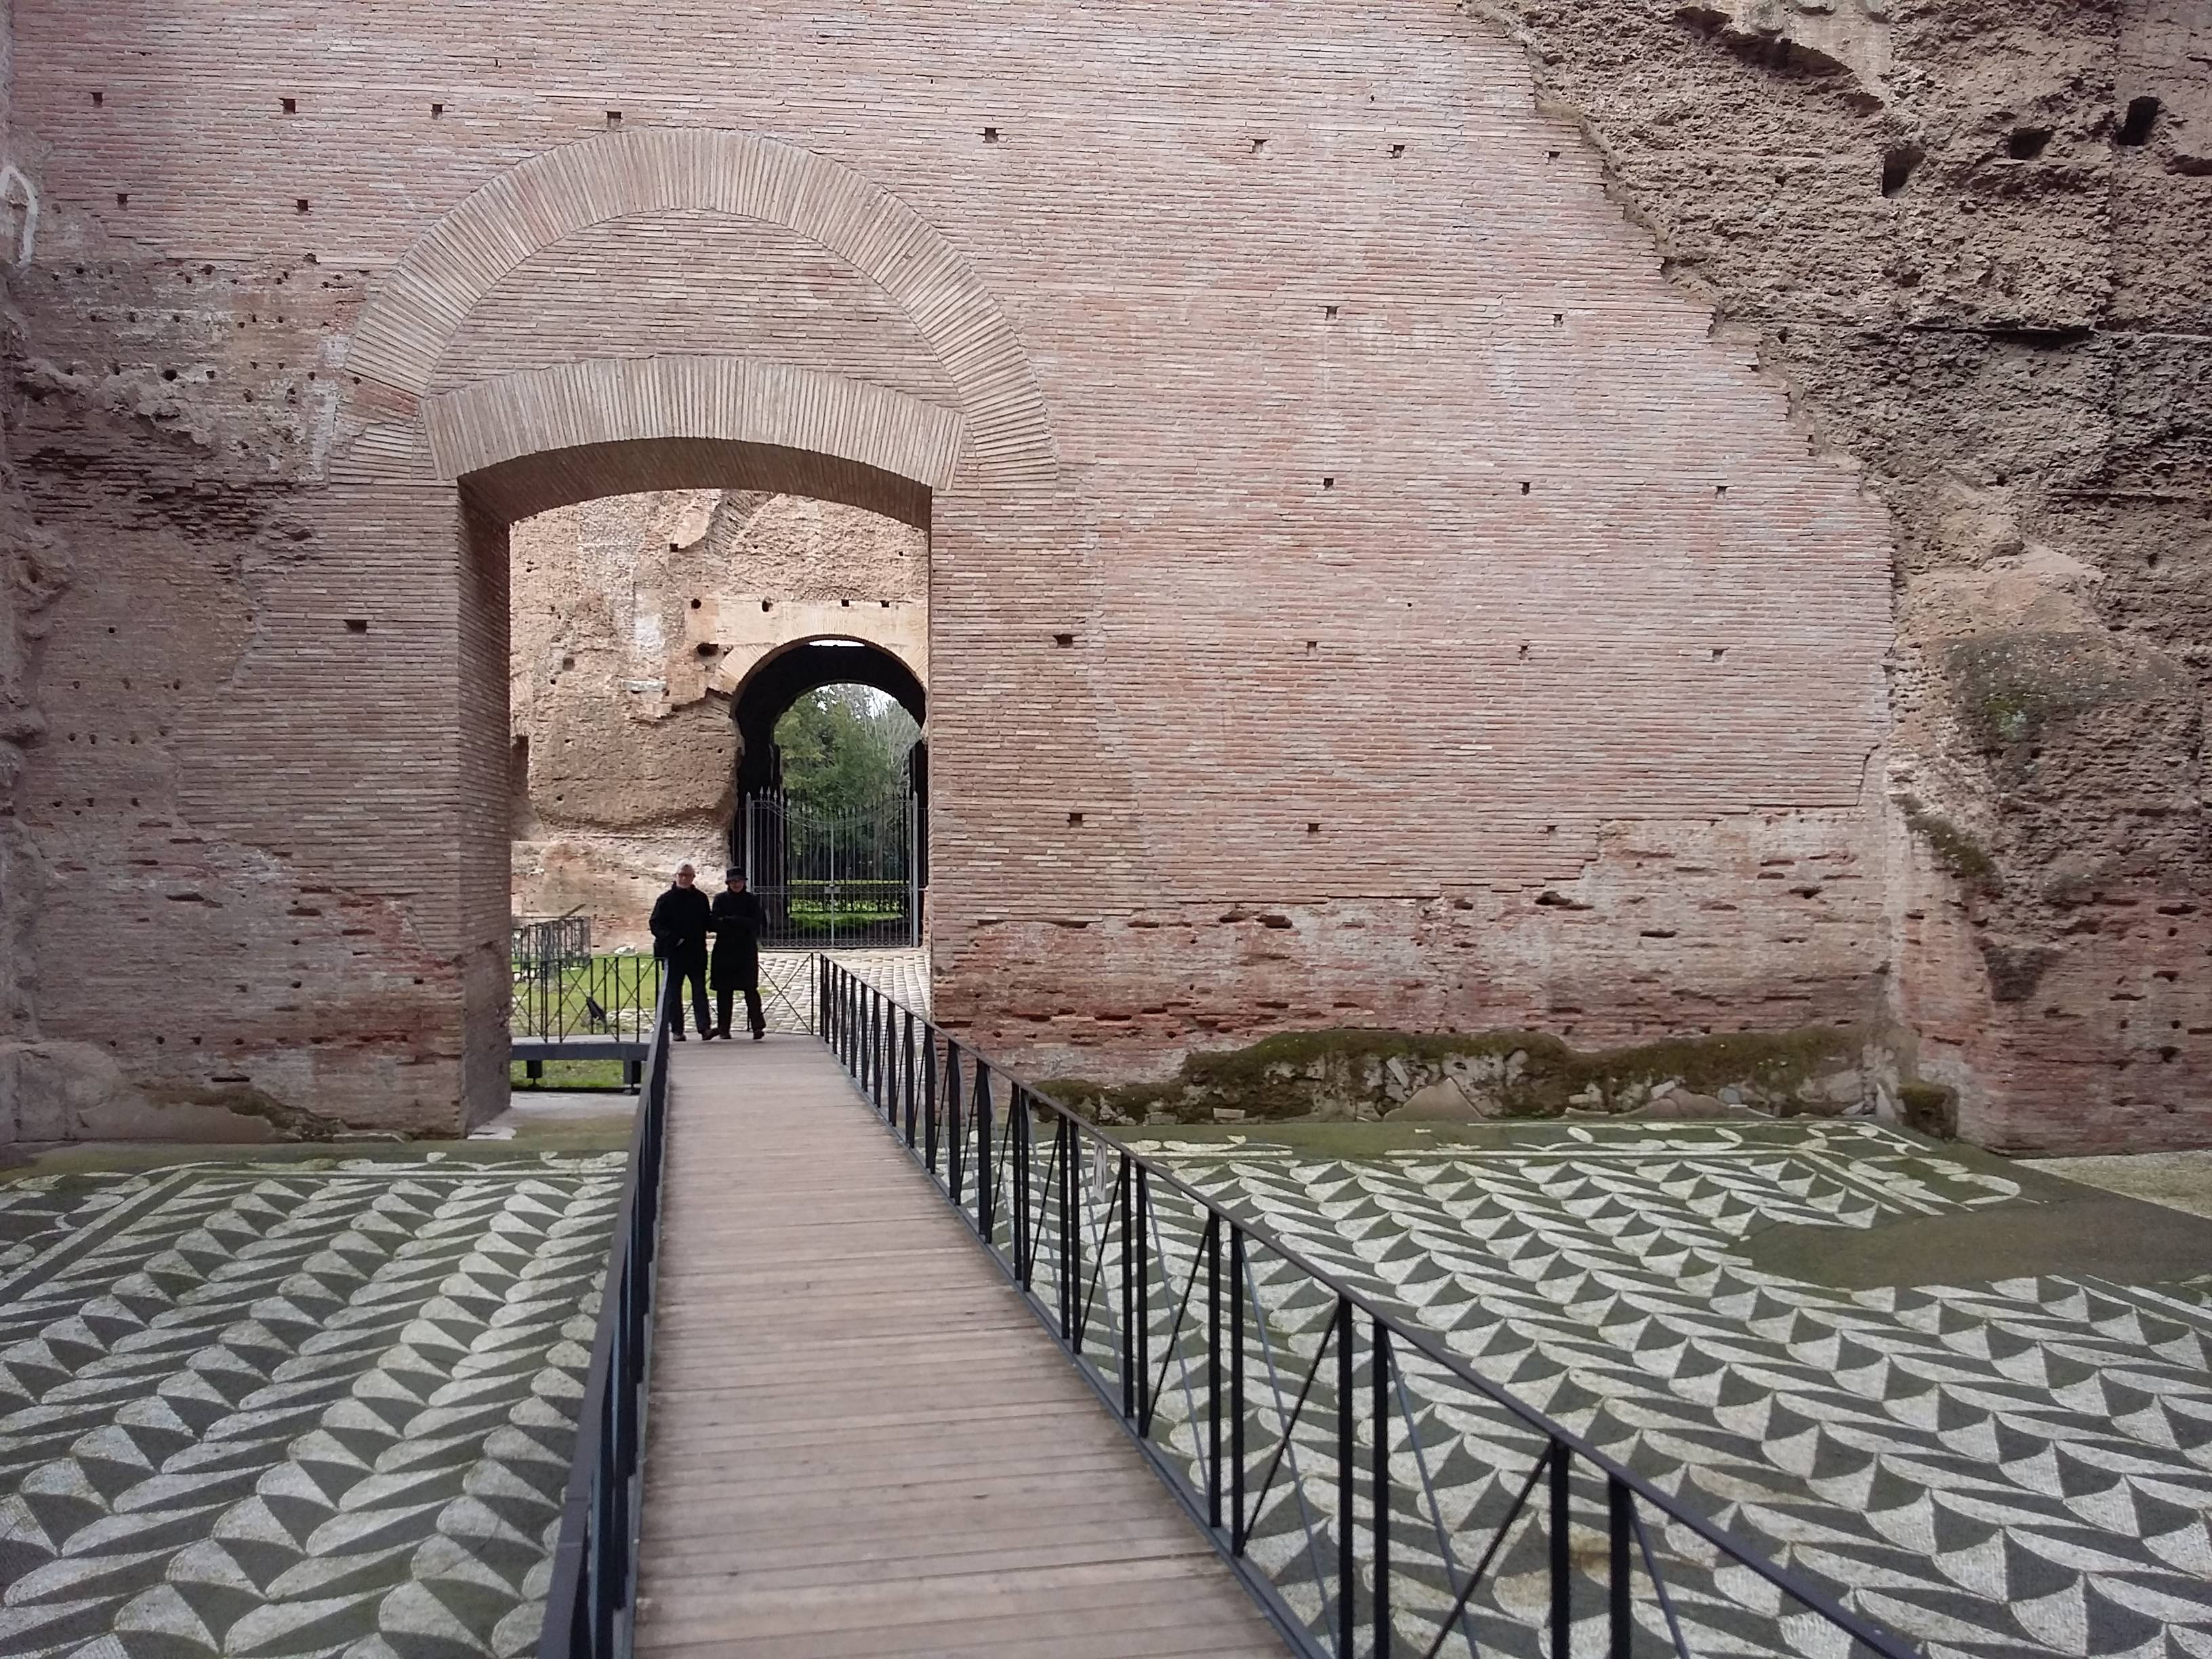 Photo 3: Les thermes de Caracalla, le gigantisme romain